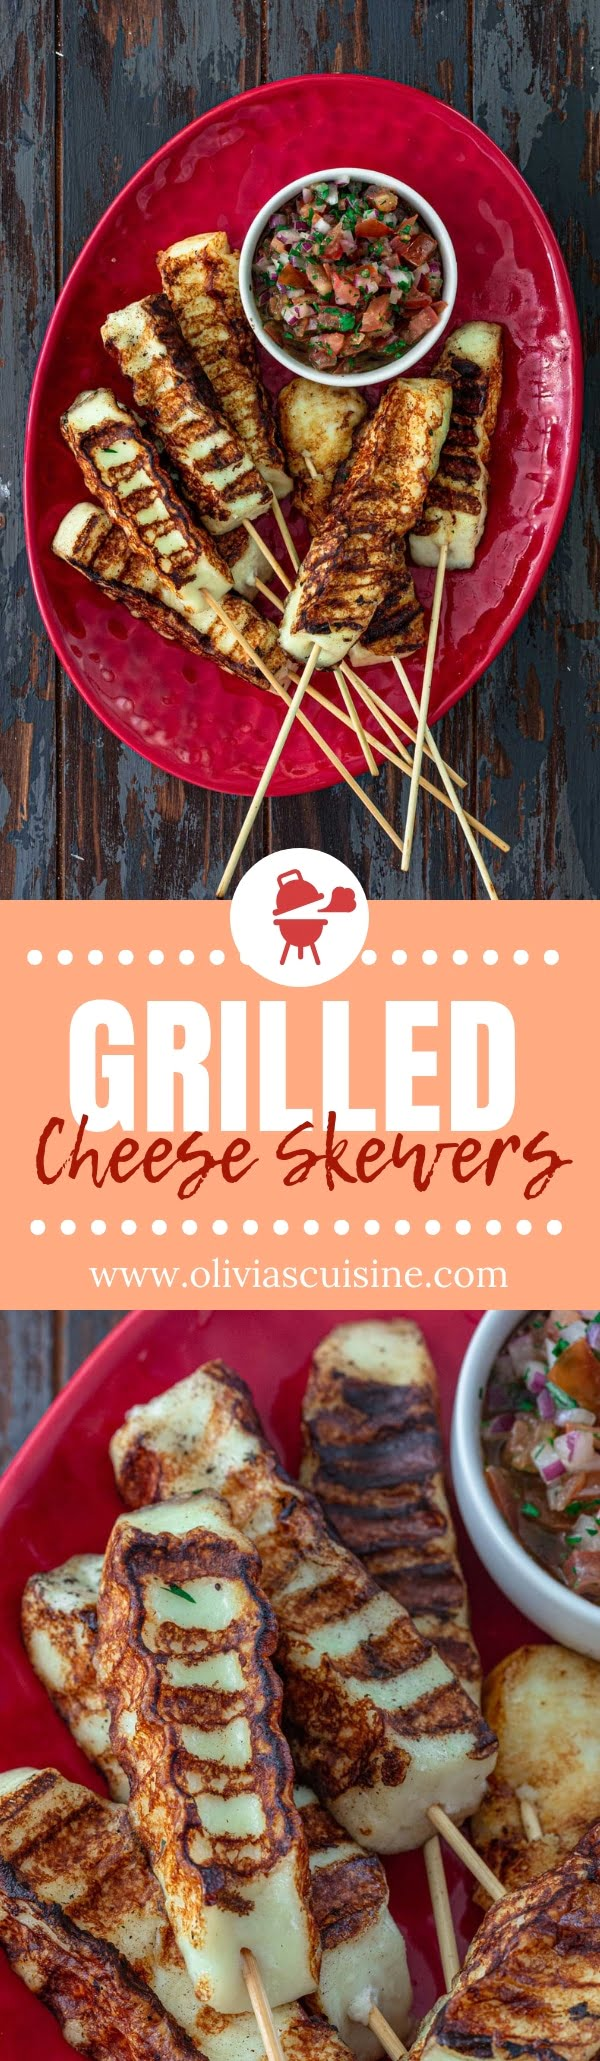 Grilled Cheese Skewers | www.oliviascuisine.com | If you haven't tried throwing some cheese on the grill yet, these Grilled Cheese Skewers are going to blow your mind! Chewy, salty and totally drool worthy. You simply gotta make it happen! (Recipe and food photography by @oliviascuisine.) #cheese #skewers #kabobs #halloumi #quesofresco #queijocoalho